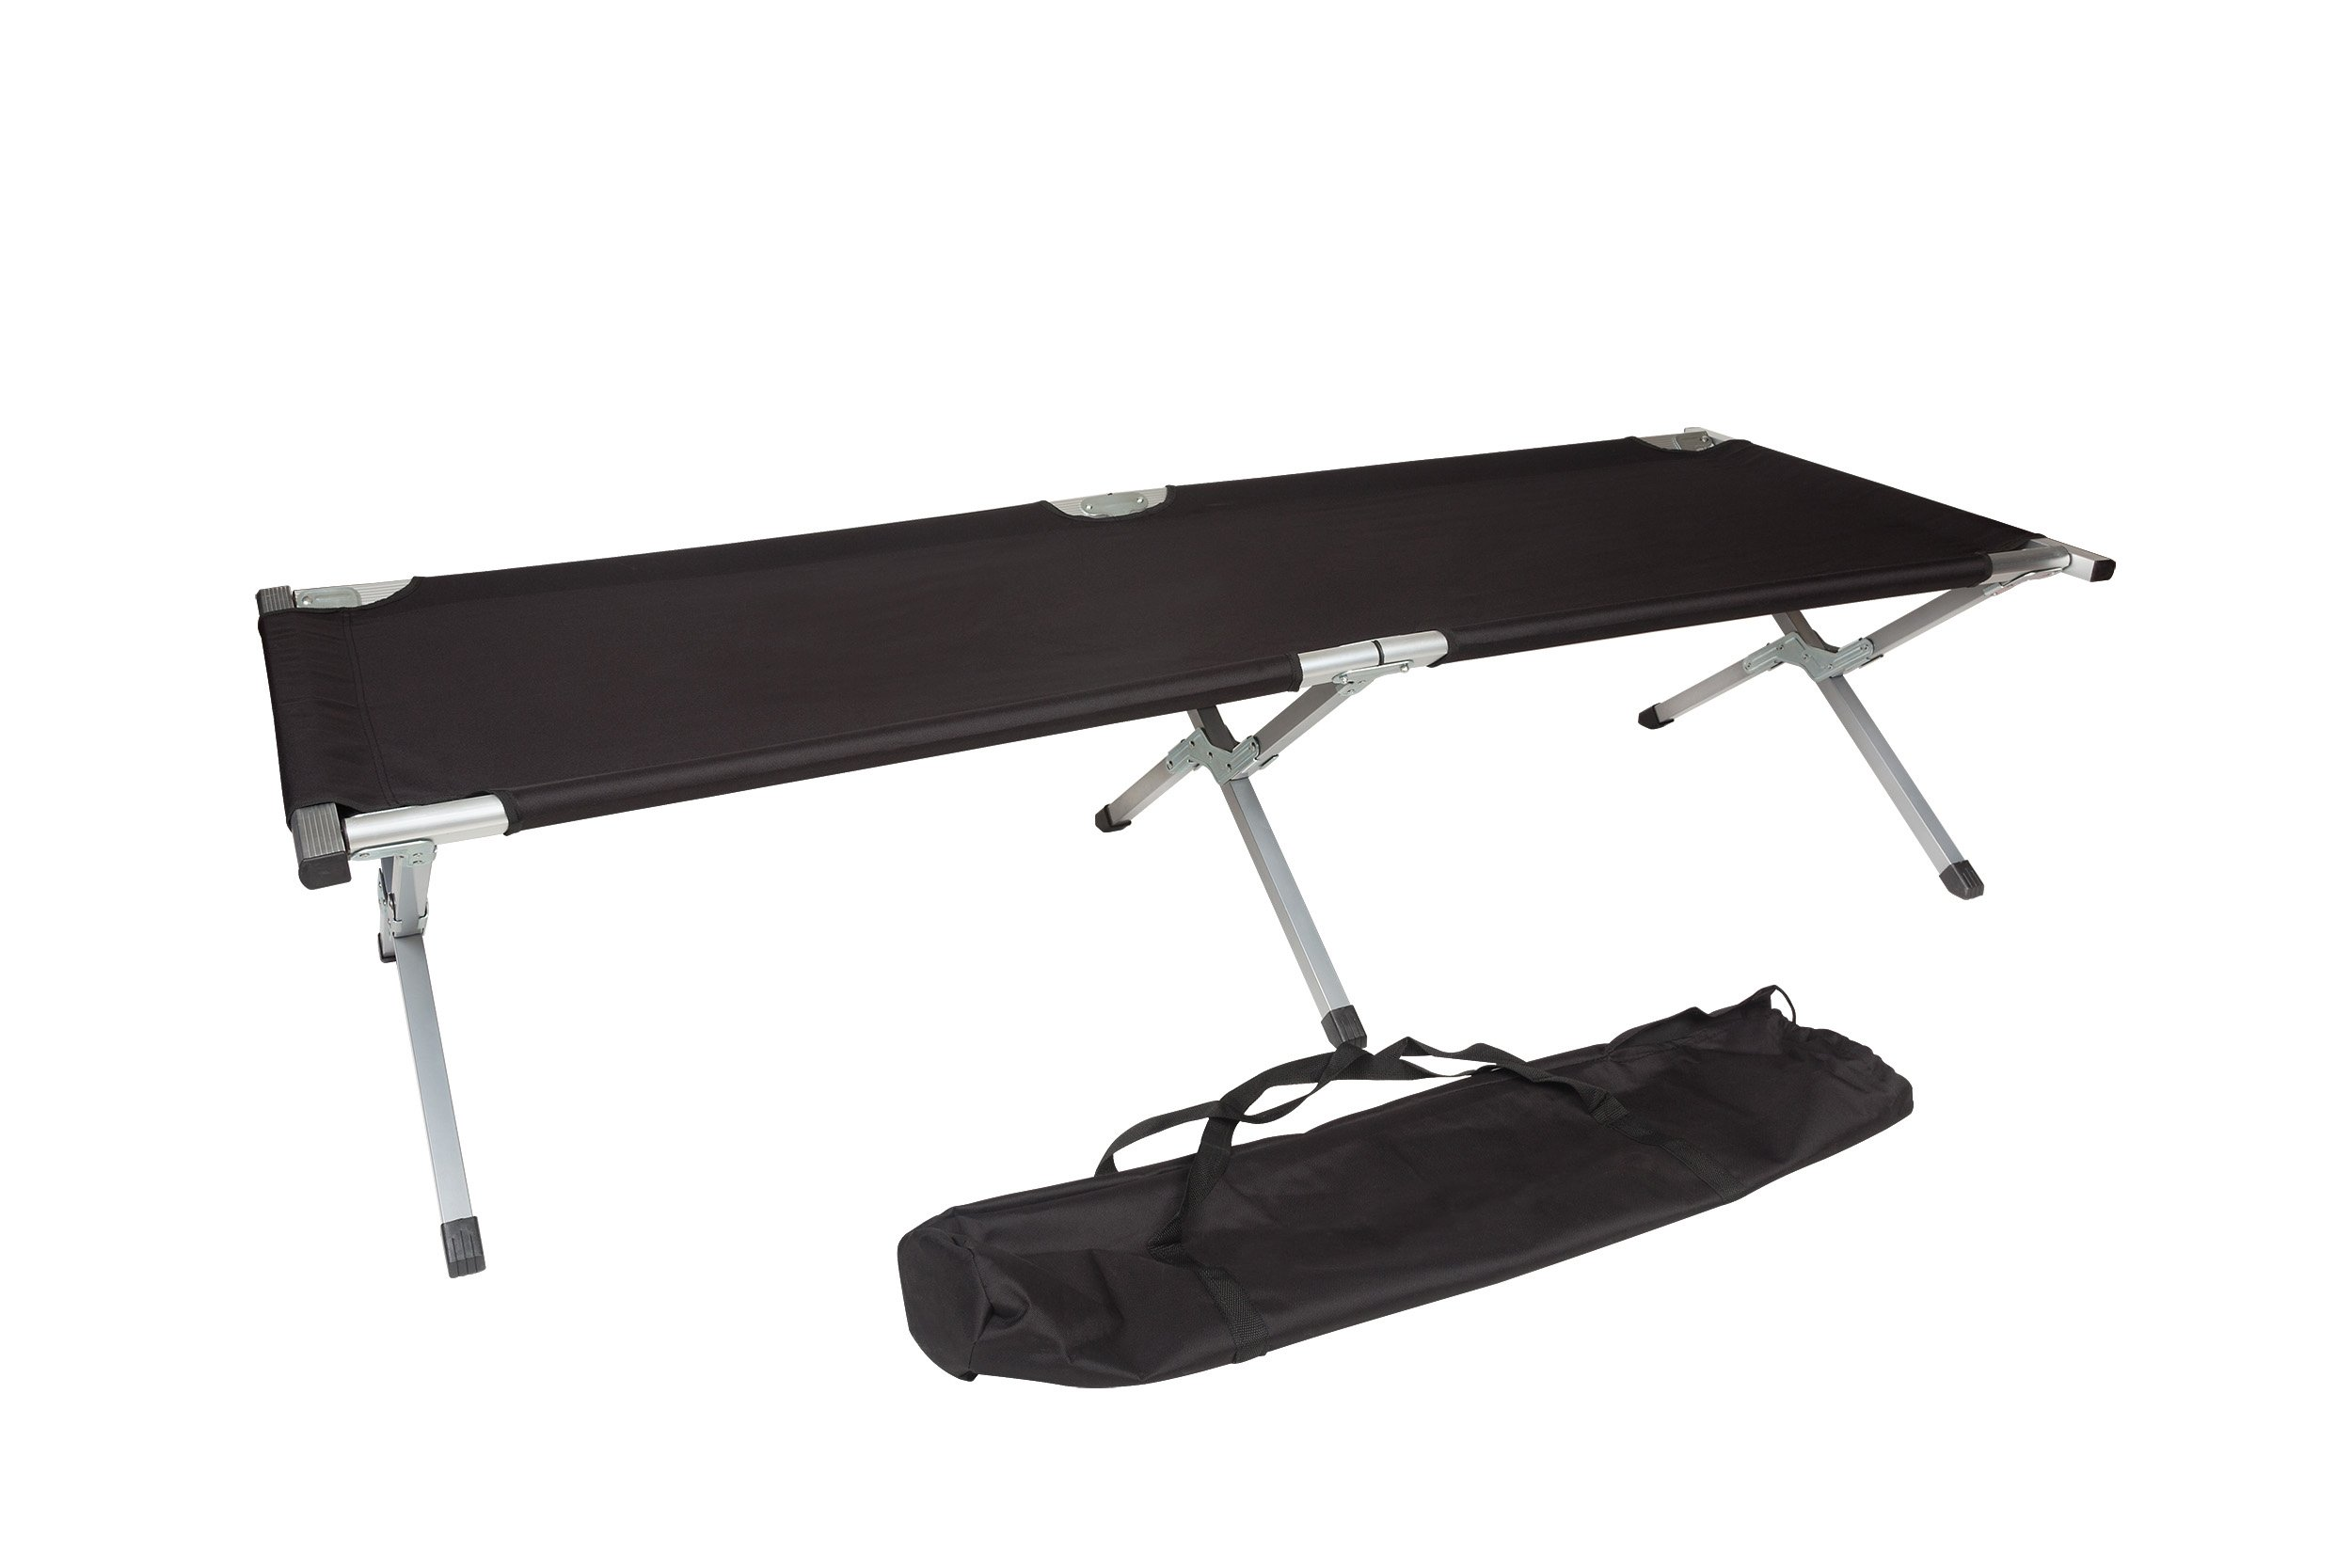 75'' Portable Folding Camping Bed & Cot - 260 lbs. Capacity By Trademark Innovations (Black) by Trademark Innovations